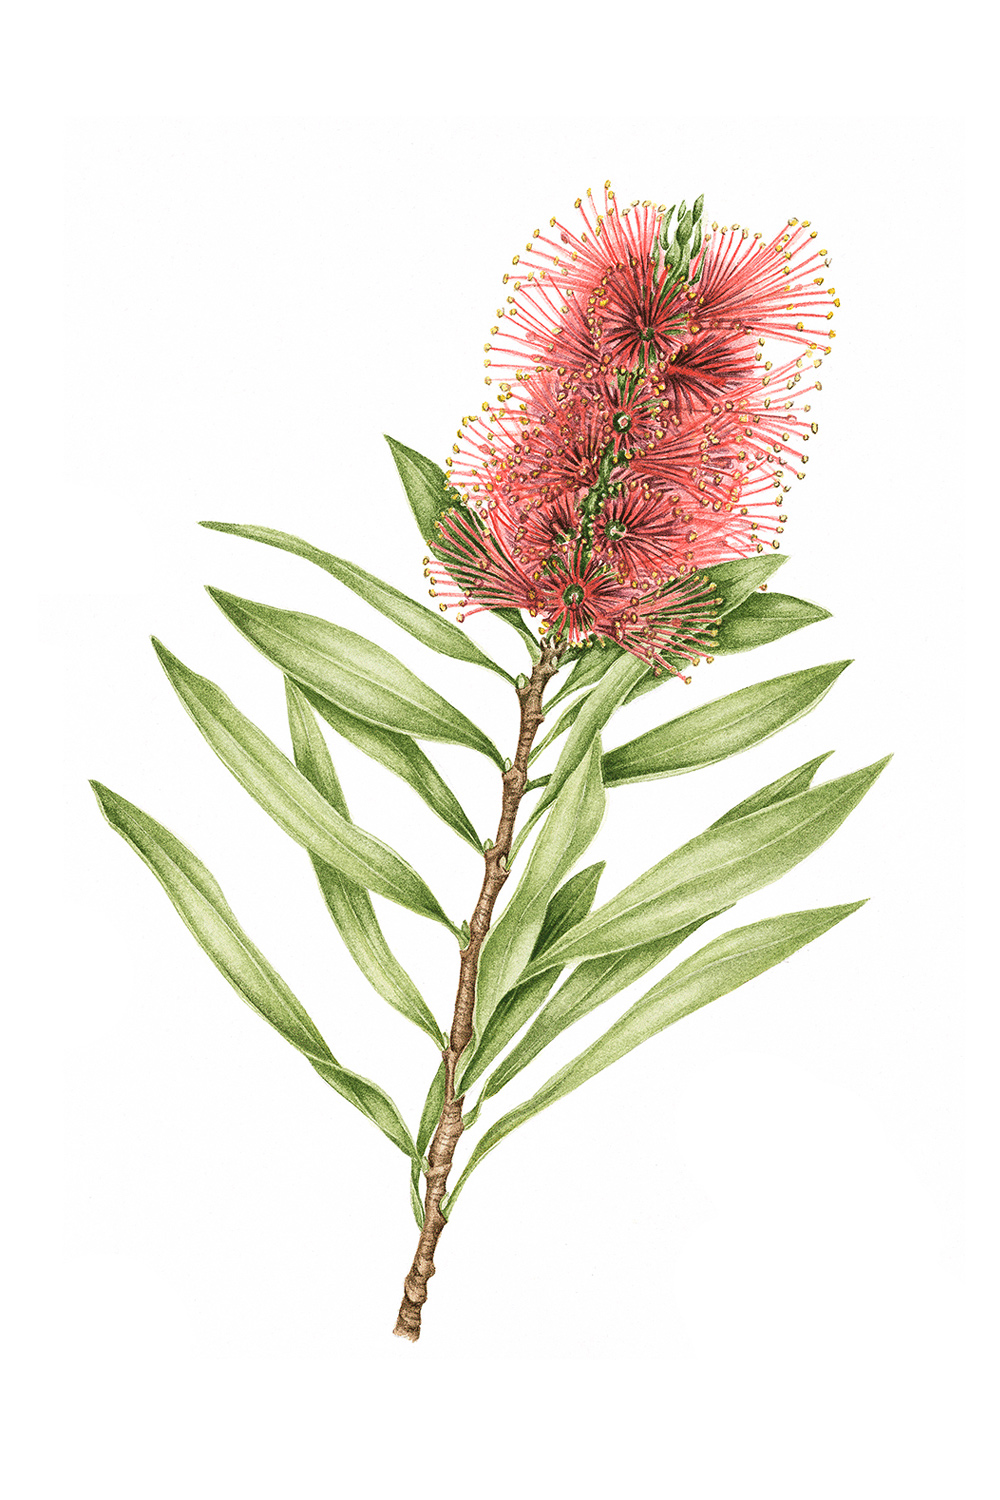 Bottle Brush, 2011, watercolour on paper